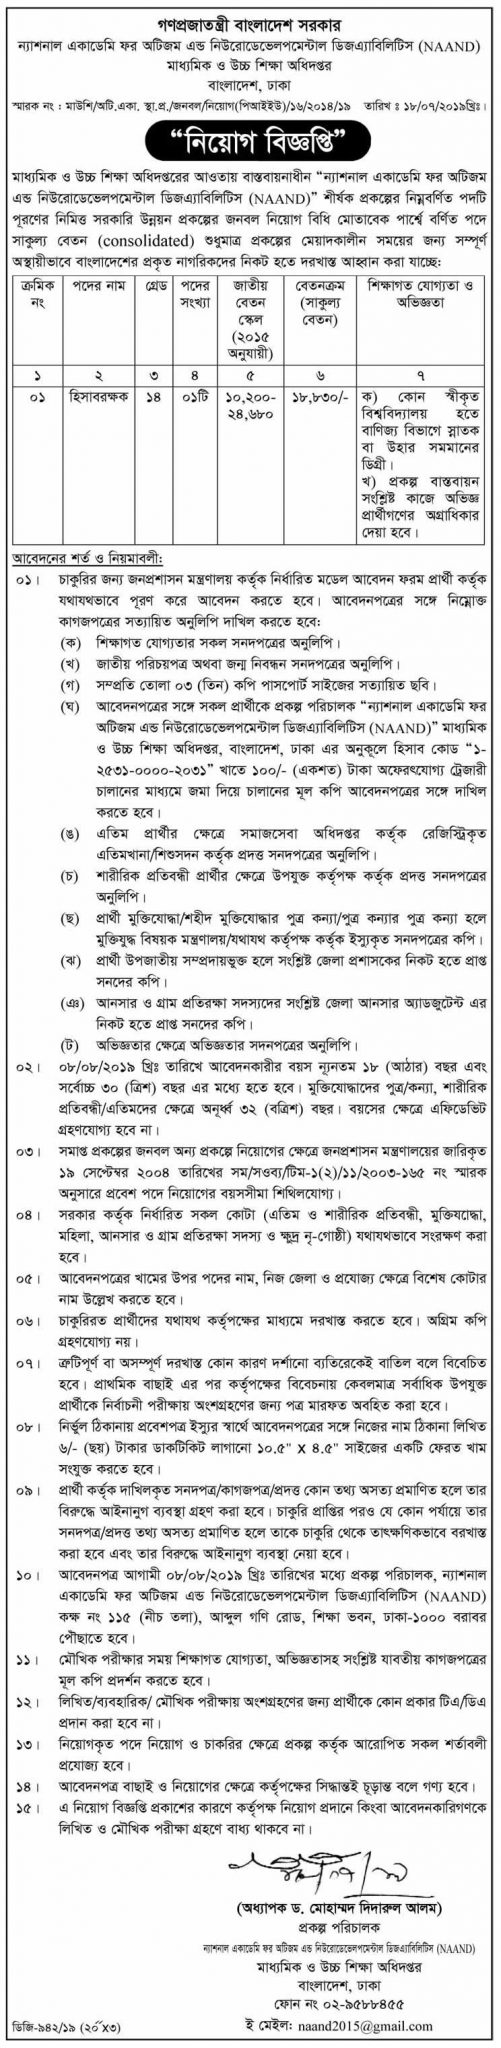 Directorate of Secondary And Higher Education DSHE Job Circular 2019